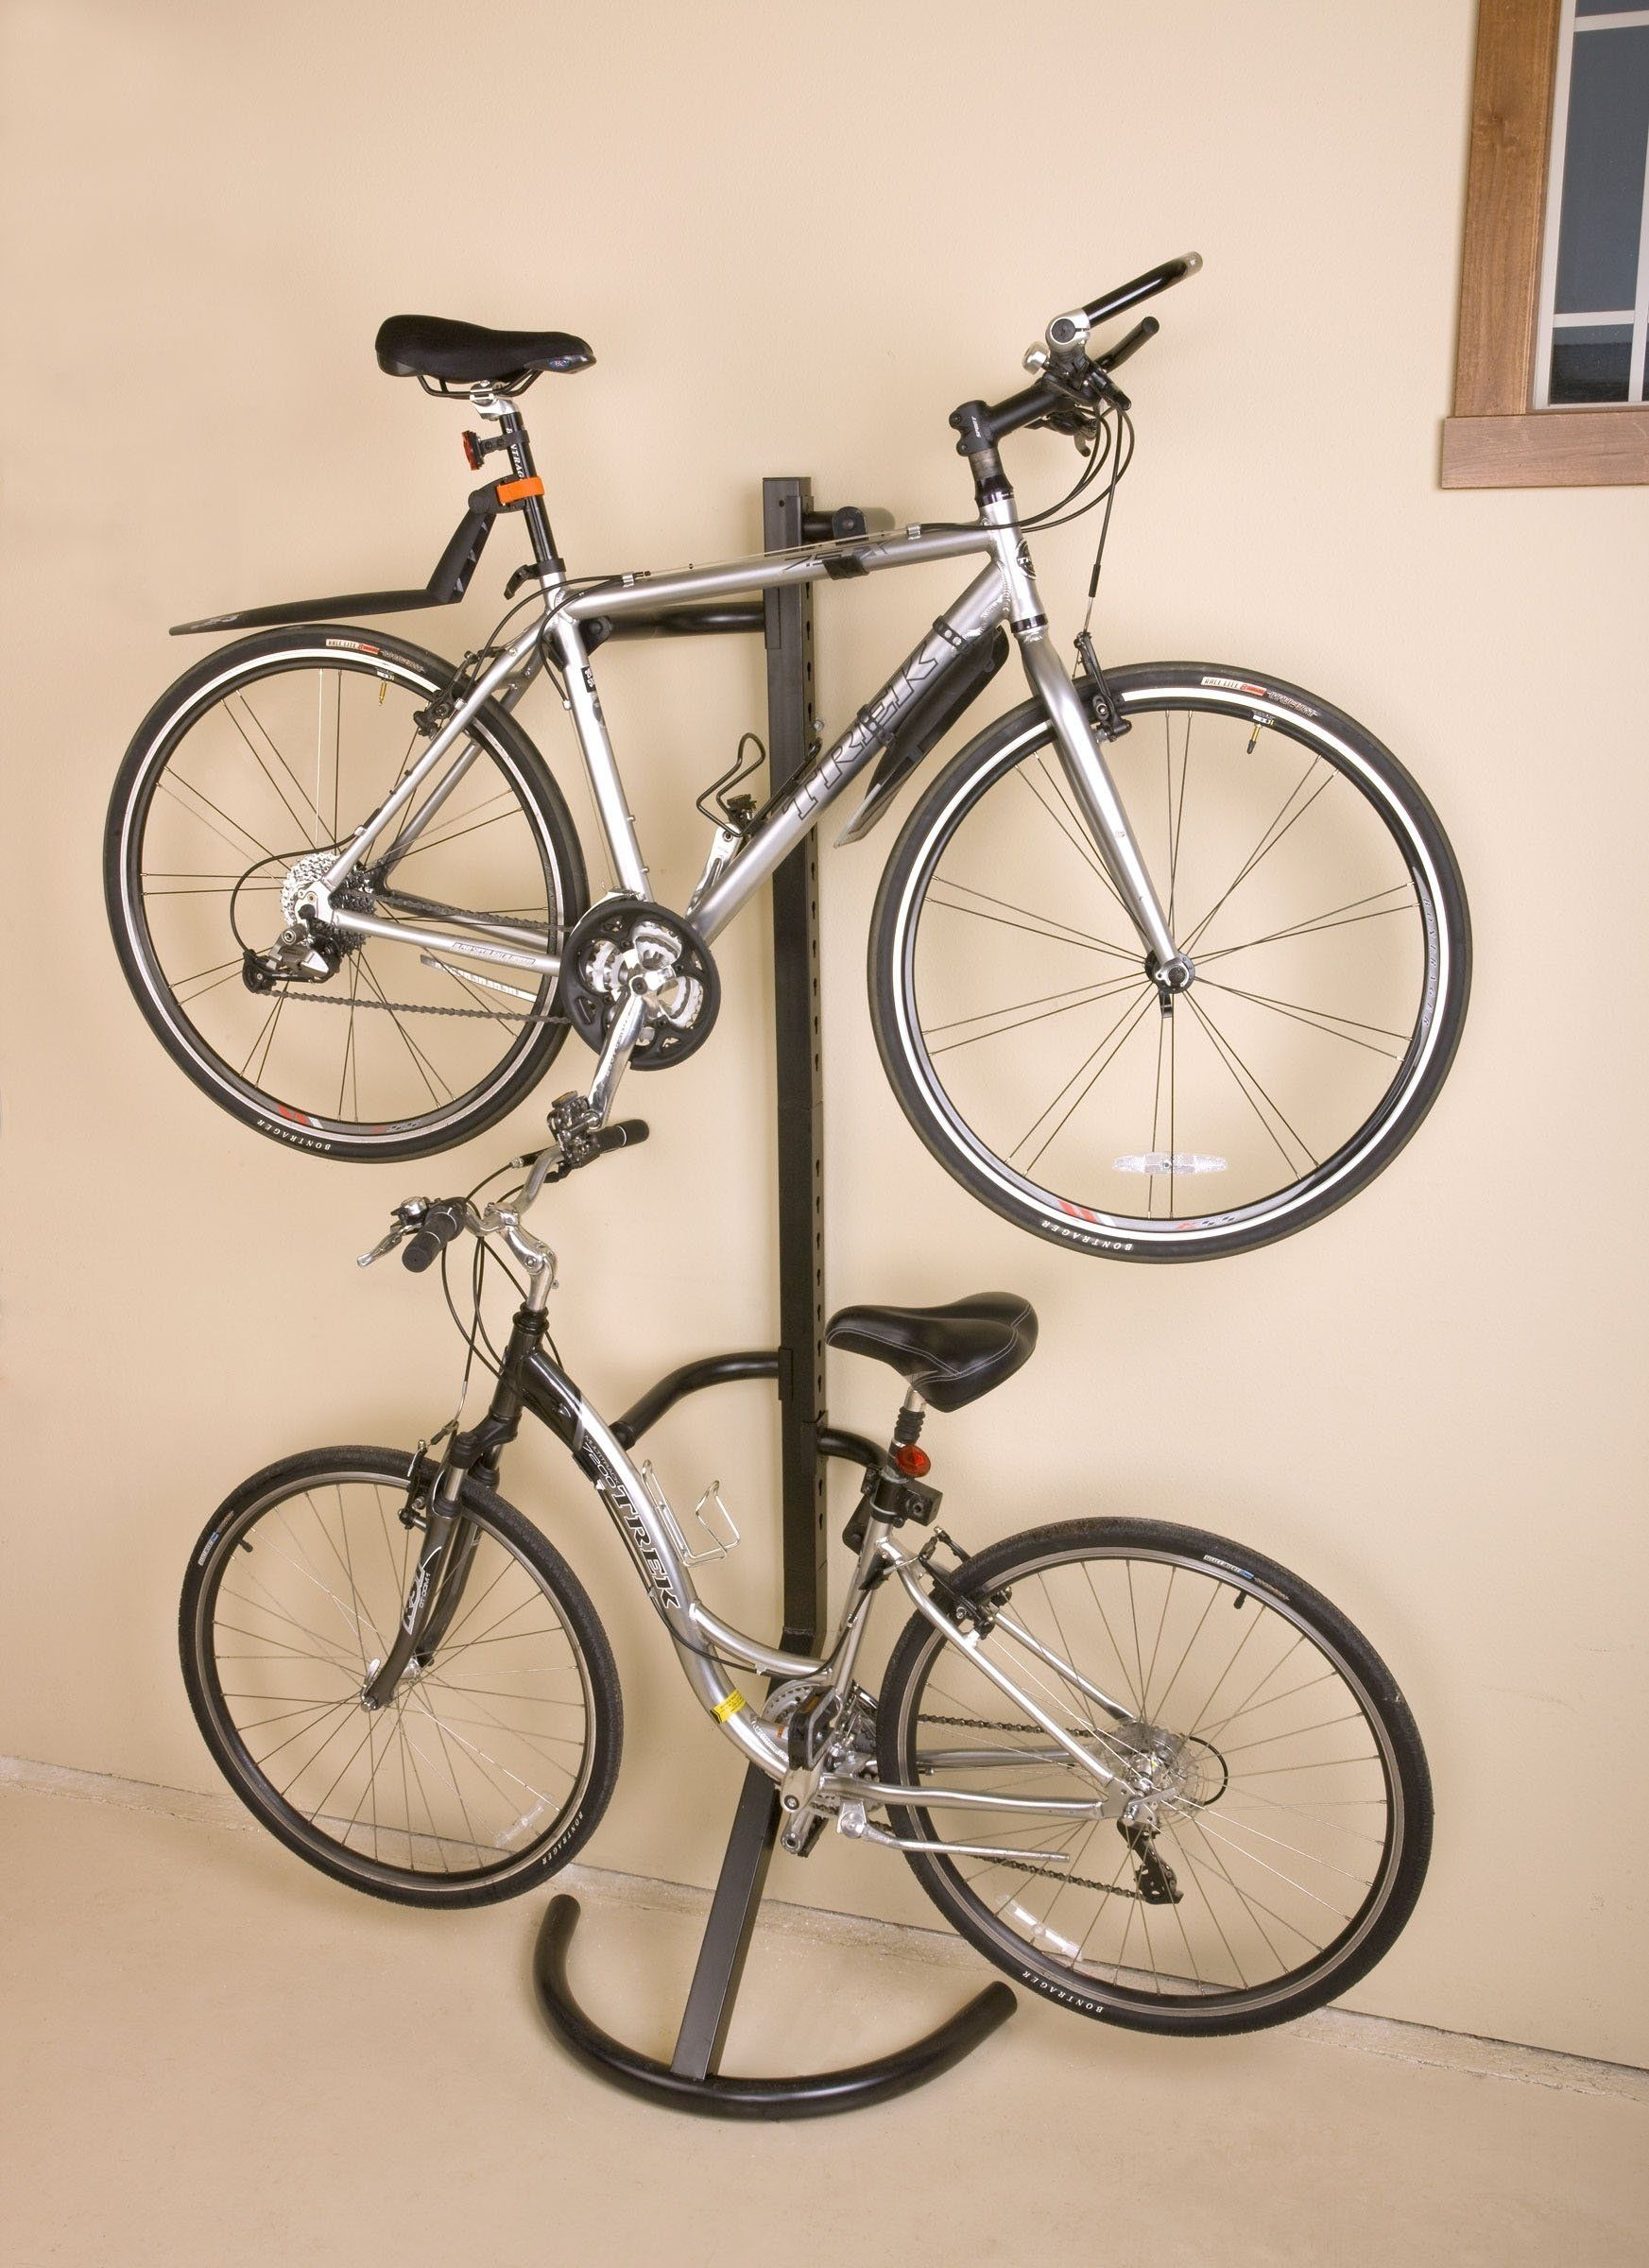 storage gear htm wheel floor ceilings oakrak ceiling product to rack up zoom bike loading